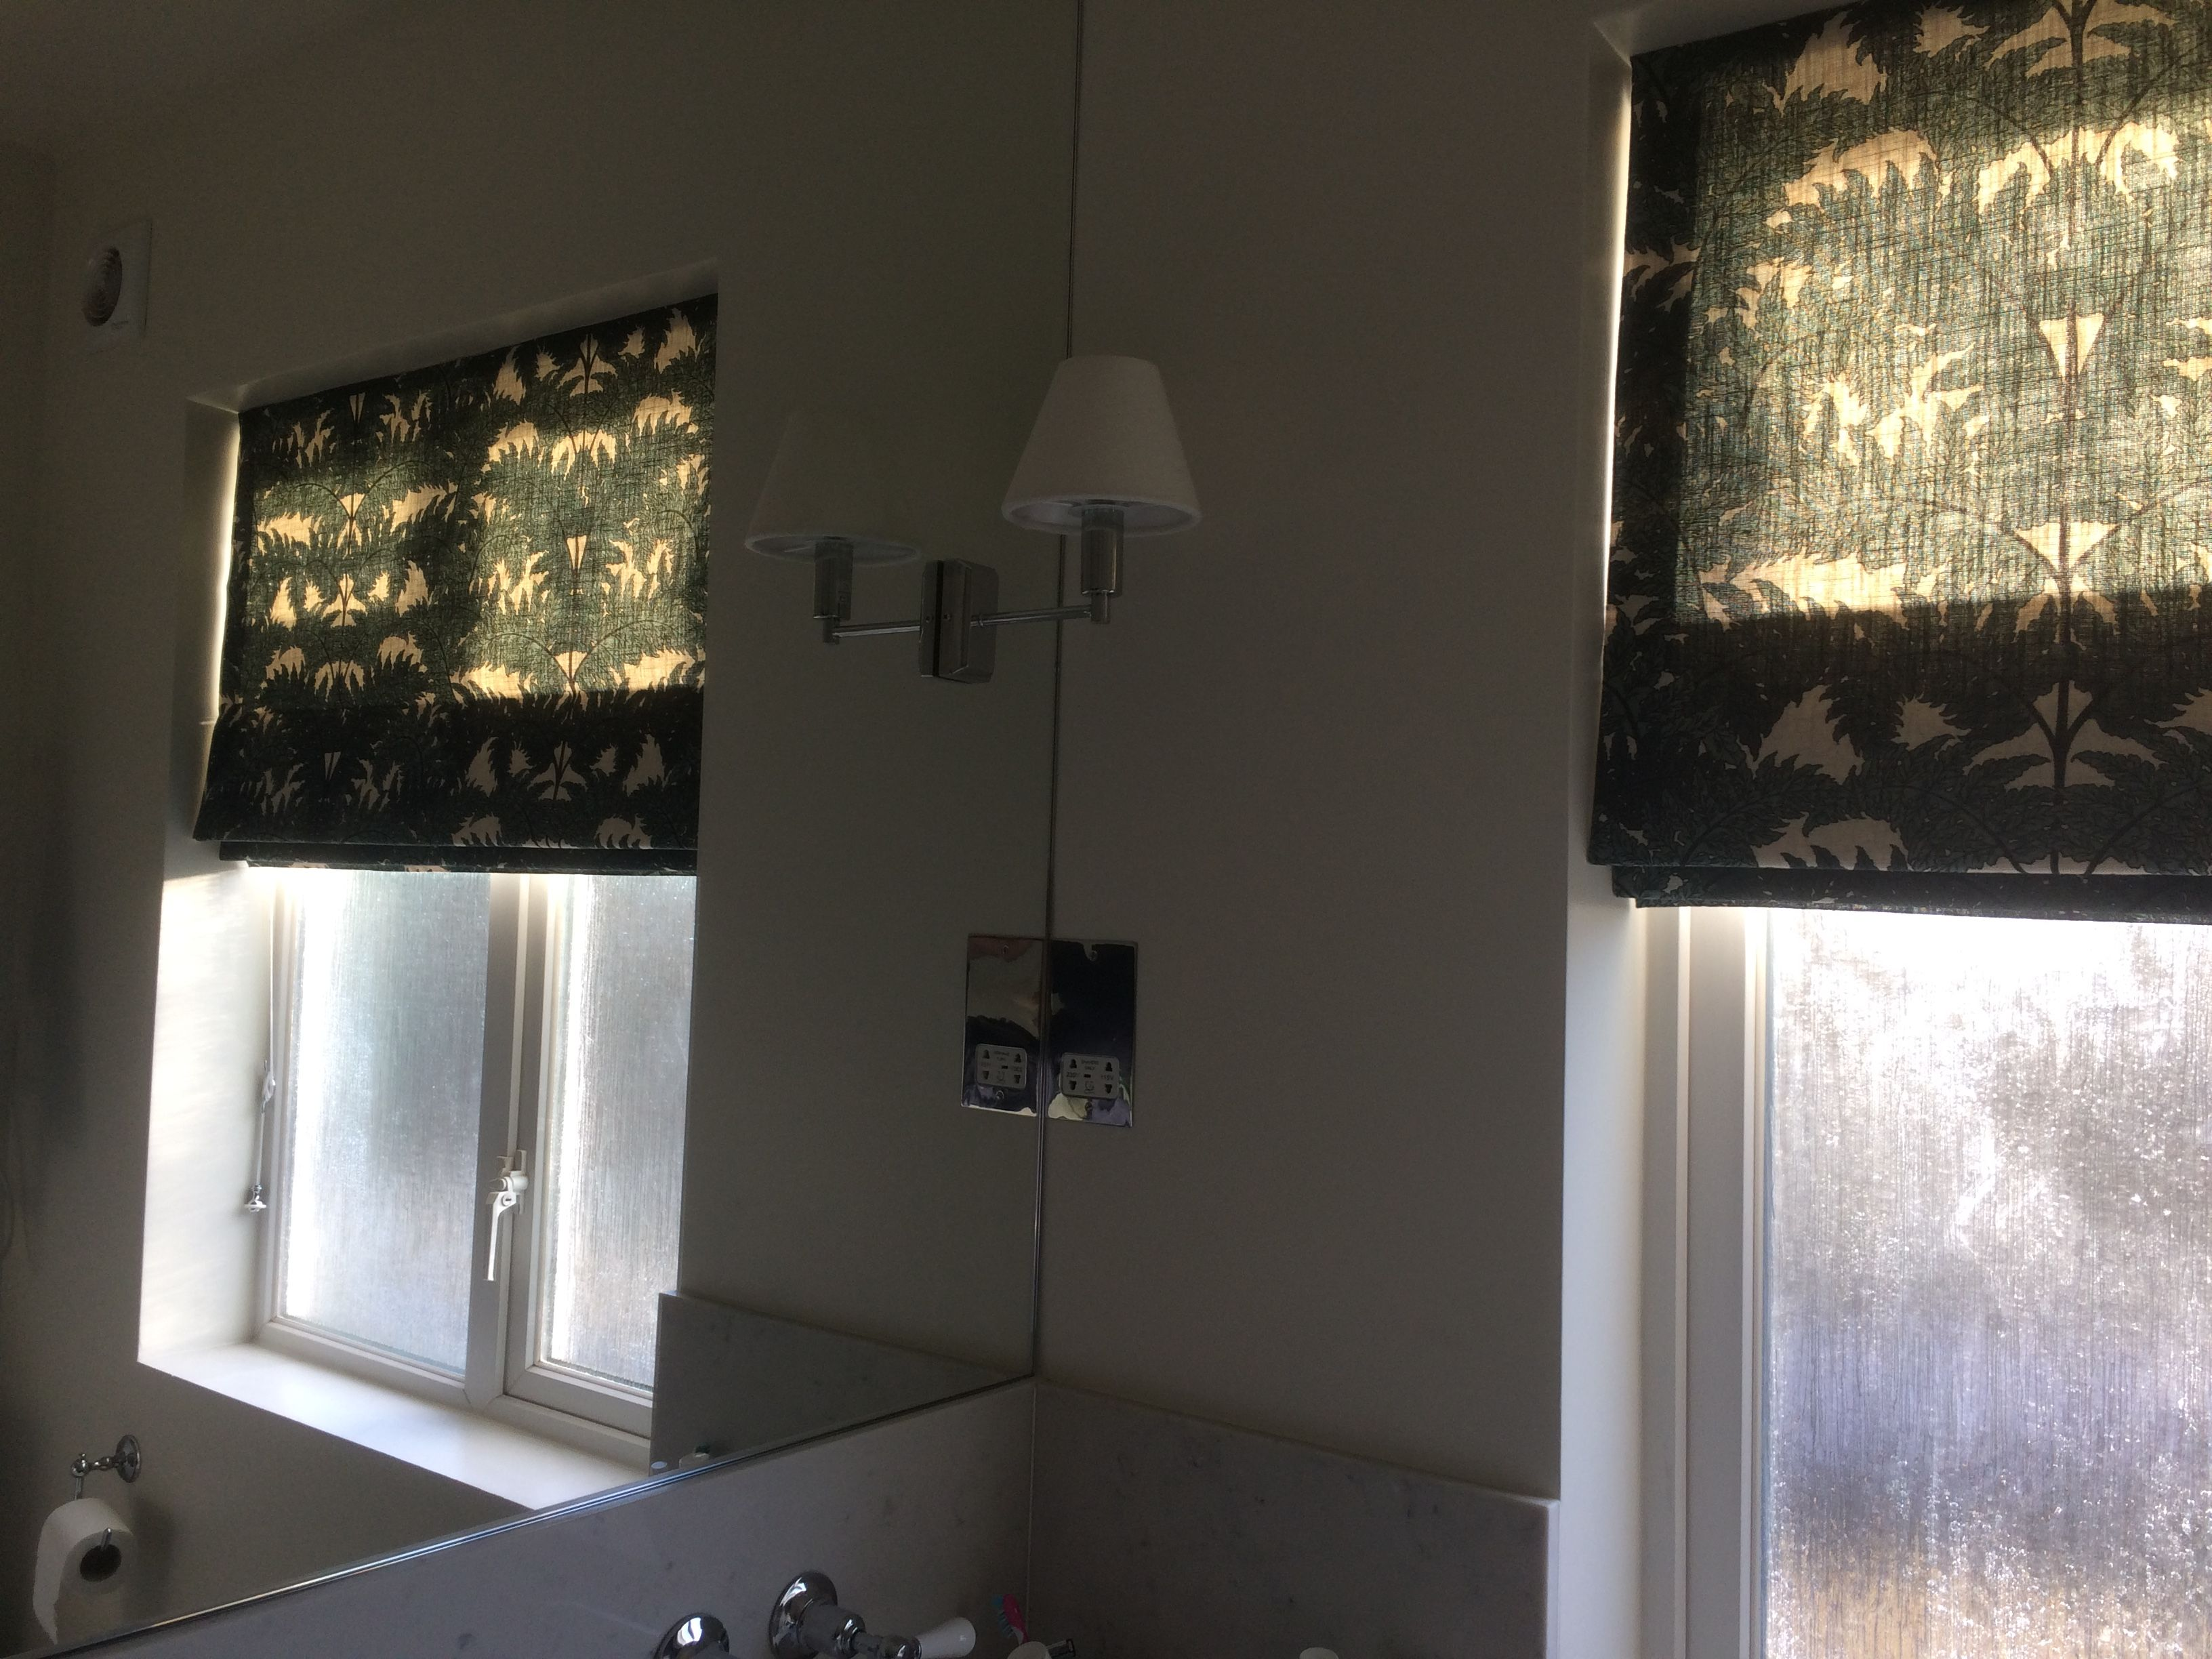 Lined Roman Blinds For Bathroom In Sw19 Fabric From House Of Hackney Lisa Gomer Interiors Bathroom Blinds Interior Work Interior